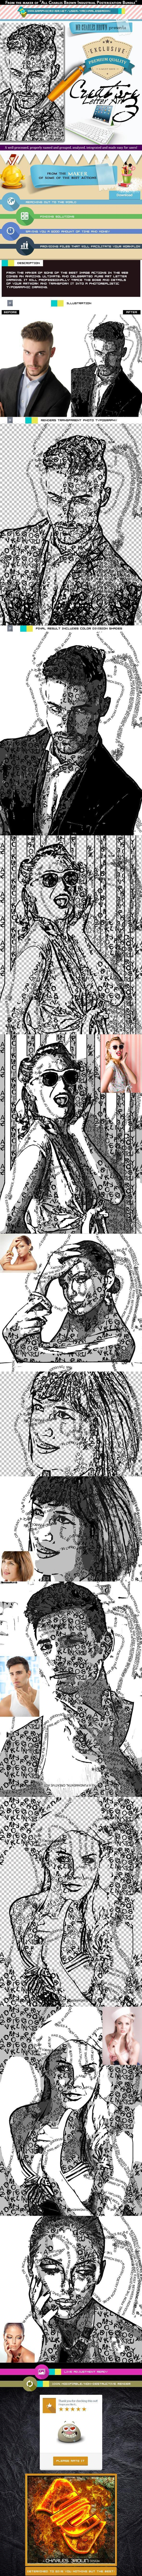 Letter Art Typographic Portrait PS Action